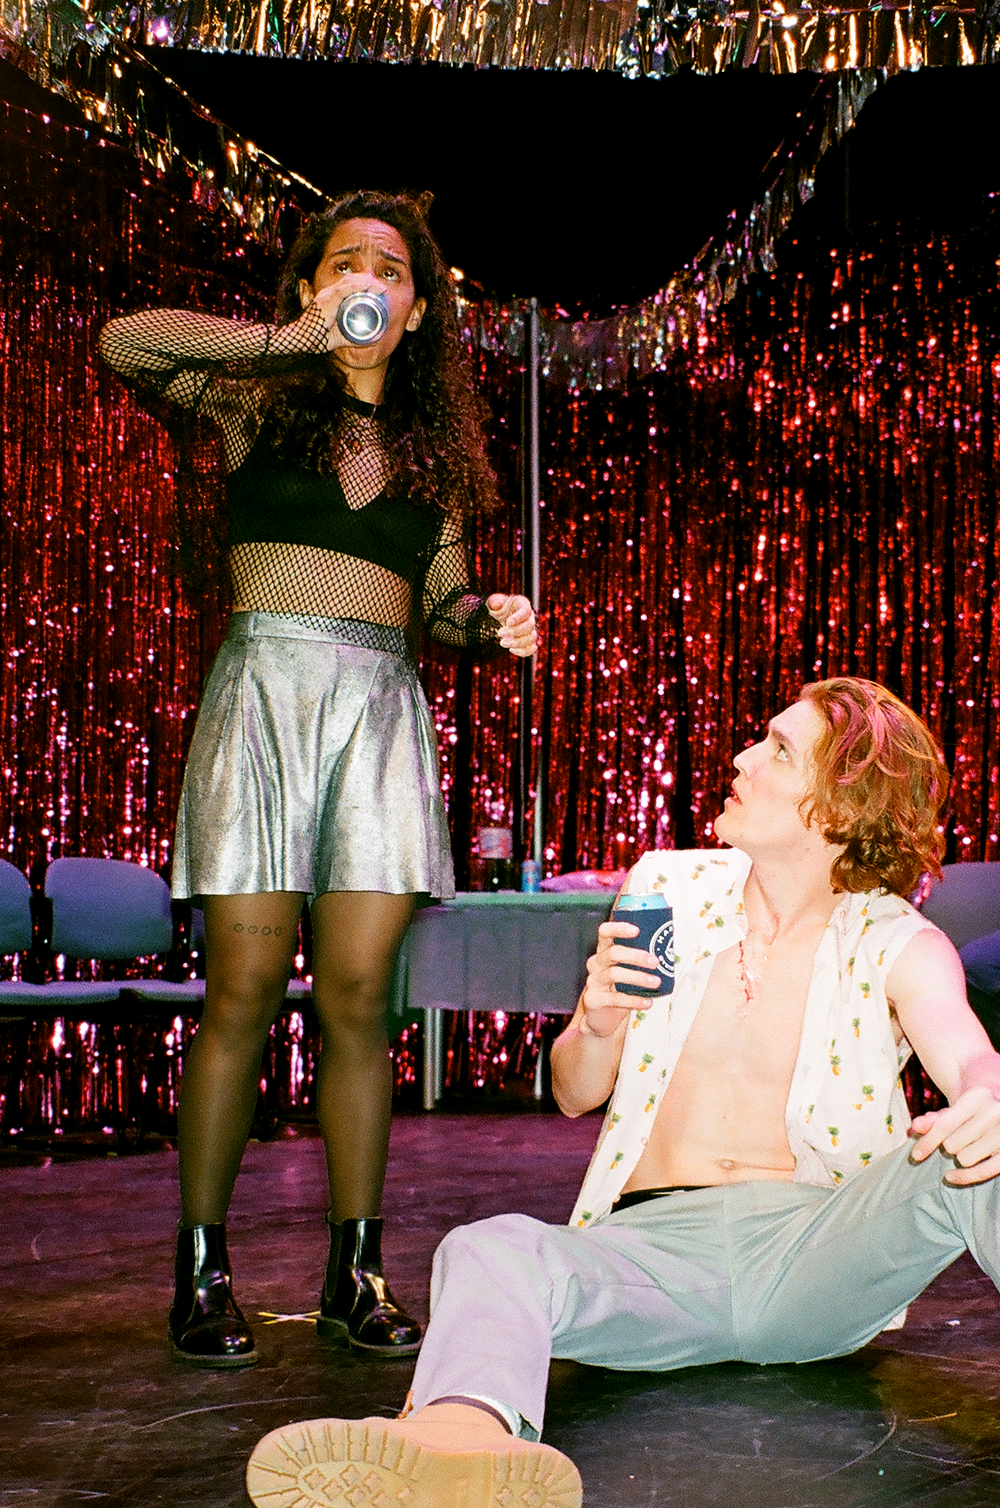 Lindlsey Howard as CANDY (left), Sam Geoffrey as ORPHEUS (right). Photo by Grant Schaefer.